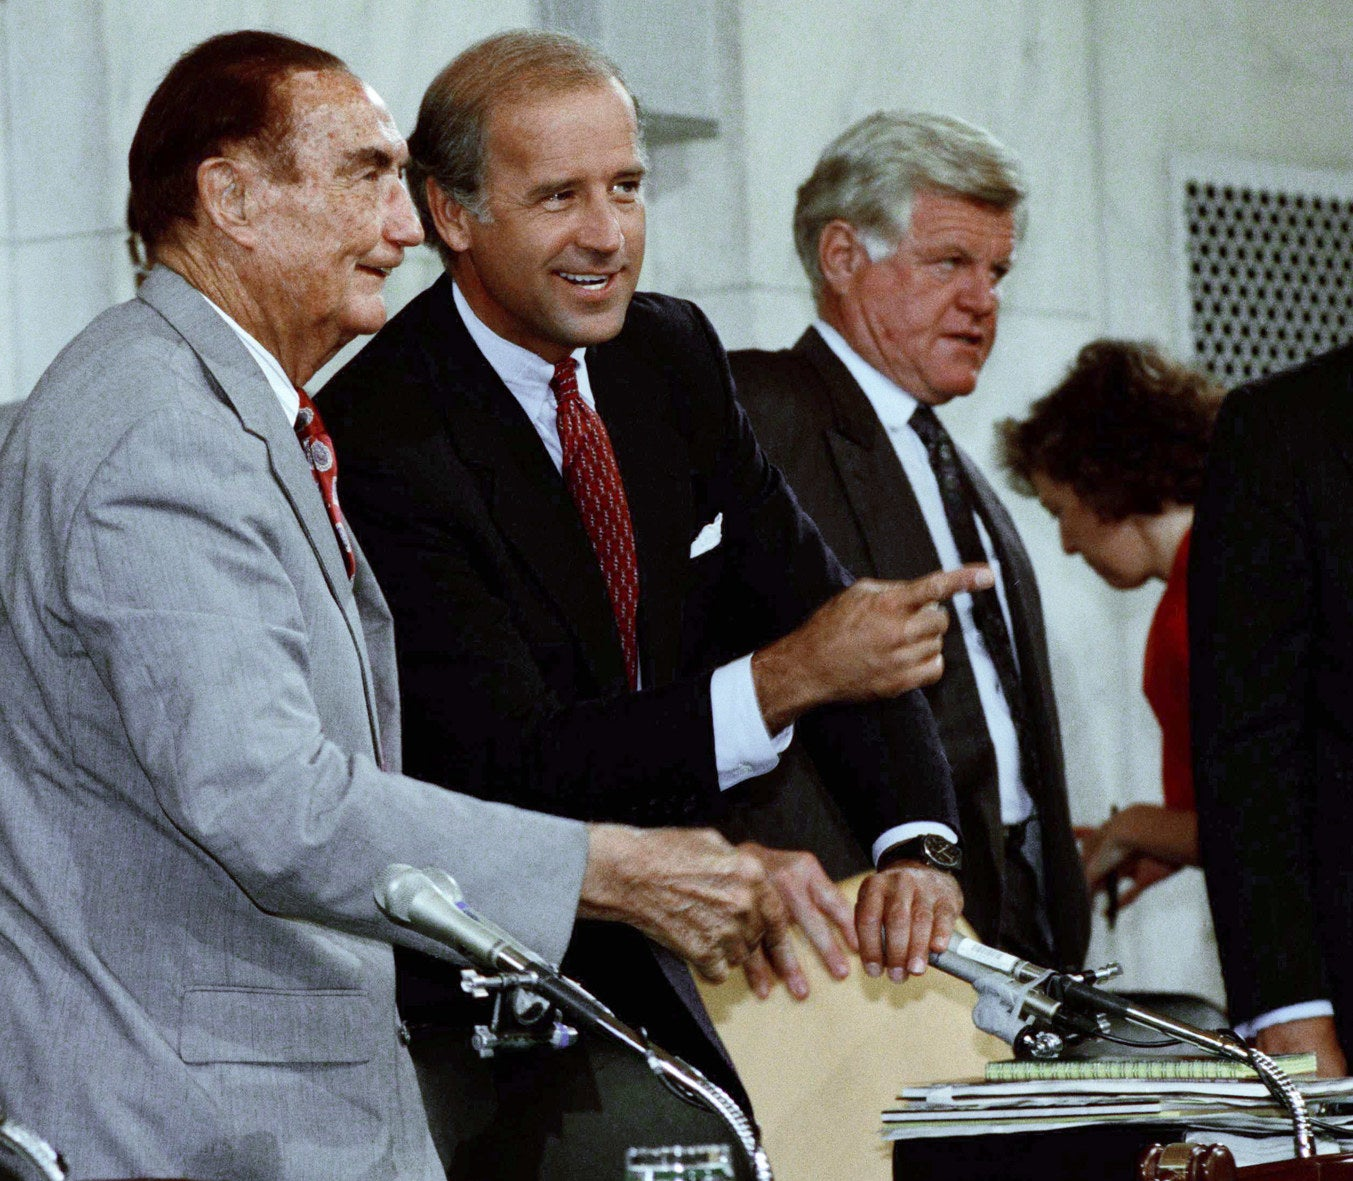 Sens. Strom Thurmond, Joe Biden, and Ted Kennedy before the Clarence Thomas hearings began in 1991.